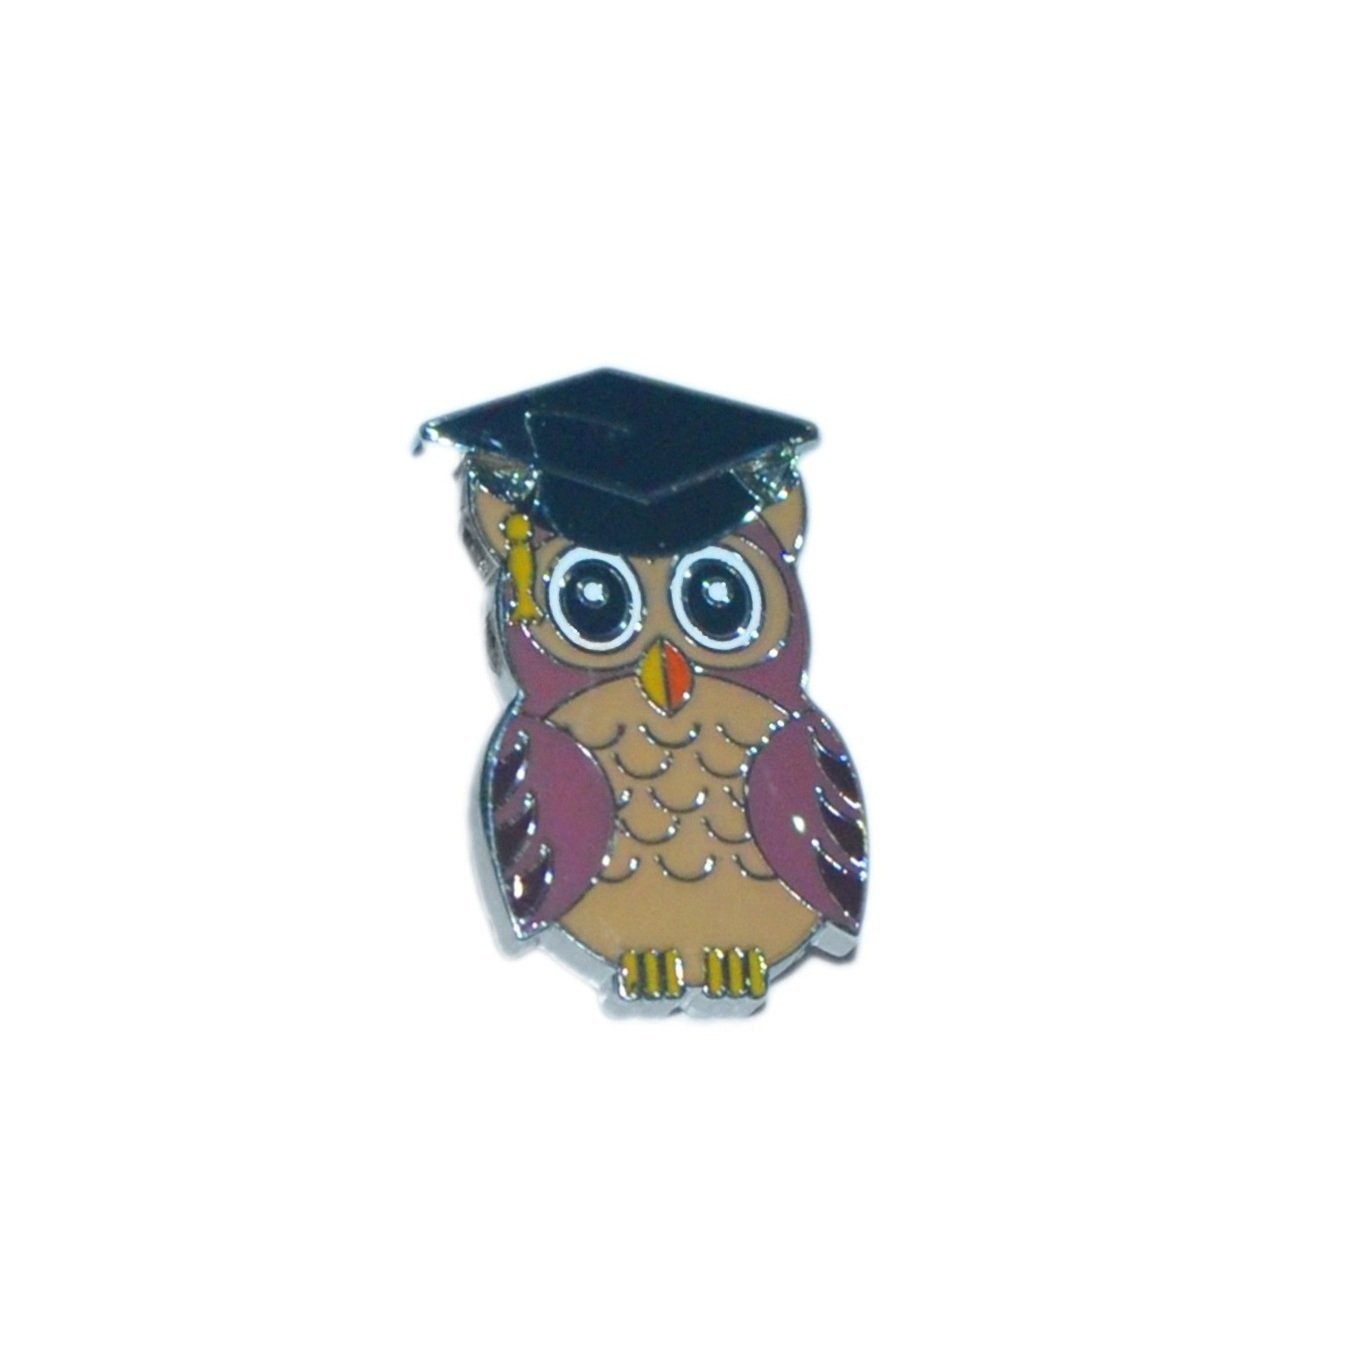 Wise Owl University Graduate Lapel Pin Badge - Minimum Mouse